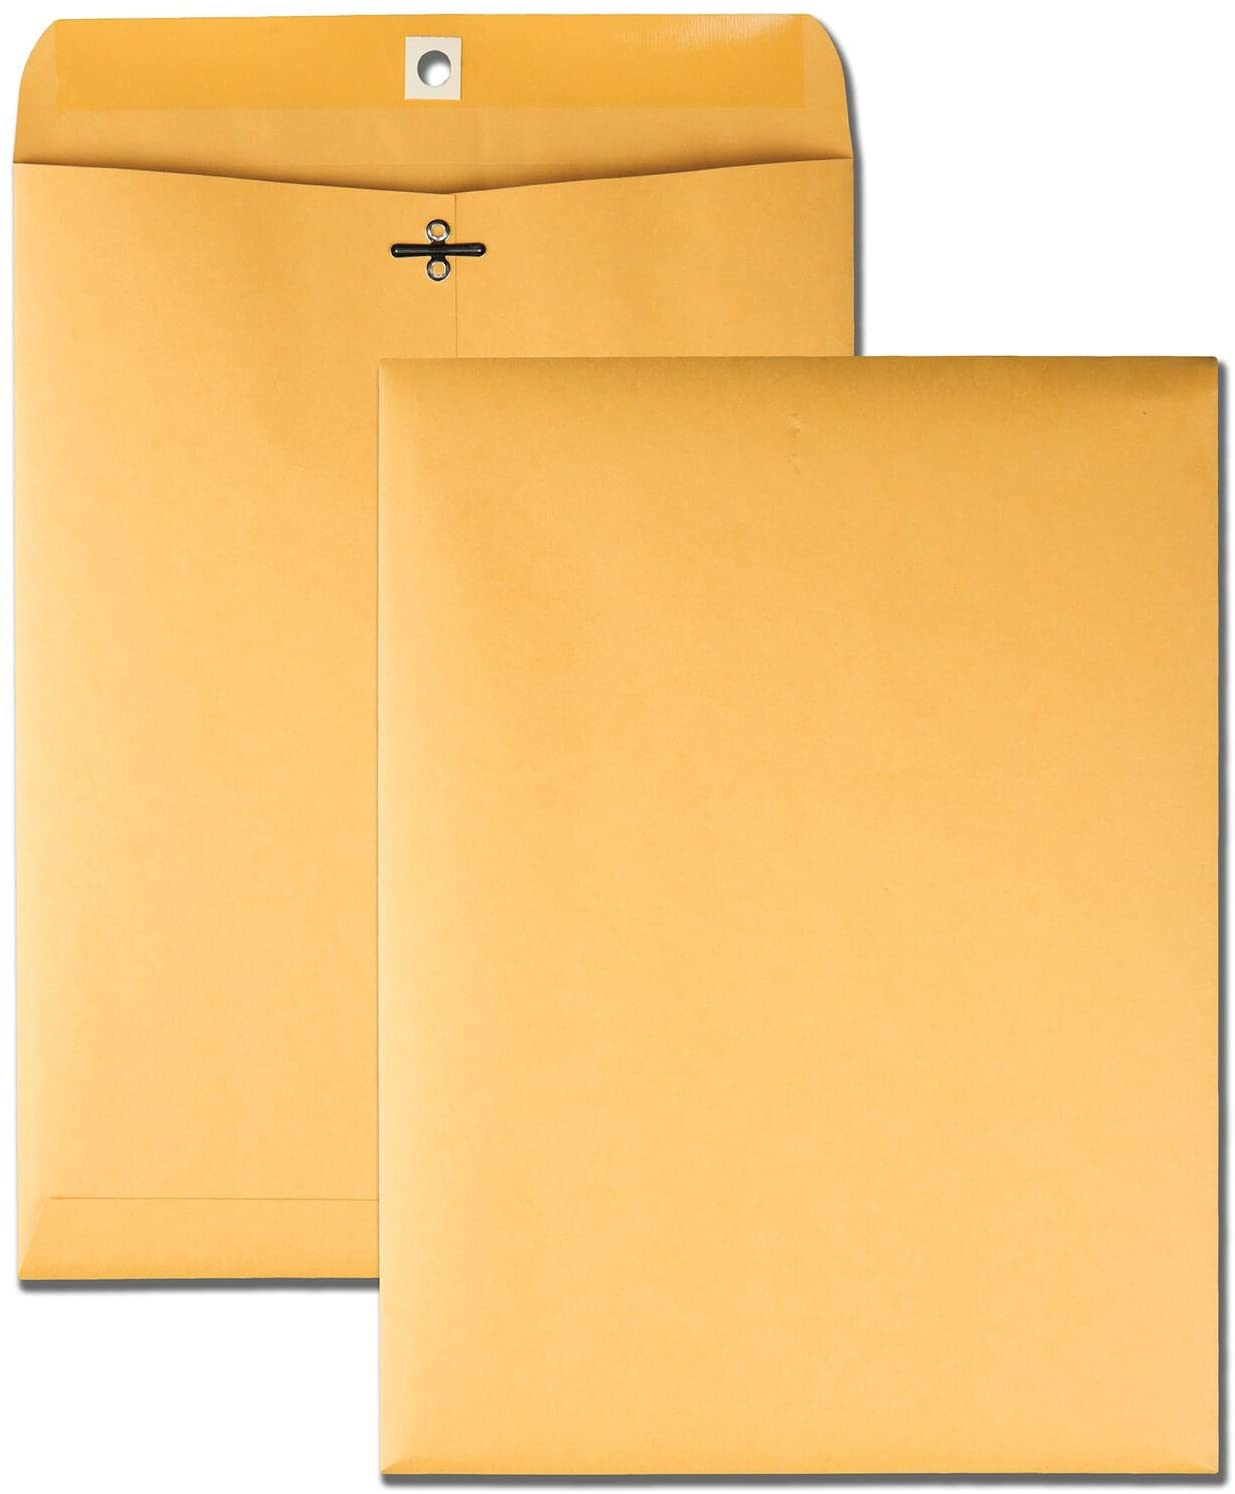 Quality Park 9 x 12 Clasp Envelopes with Deeply Gummed Flaps, Great for Filing, Storing or Mailing Documents, 28 lb Brown Kraft, 100 per Box (37890) : Office Products